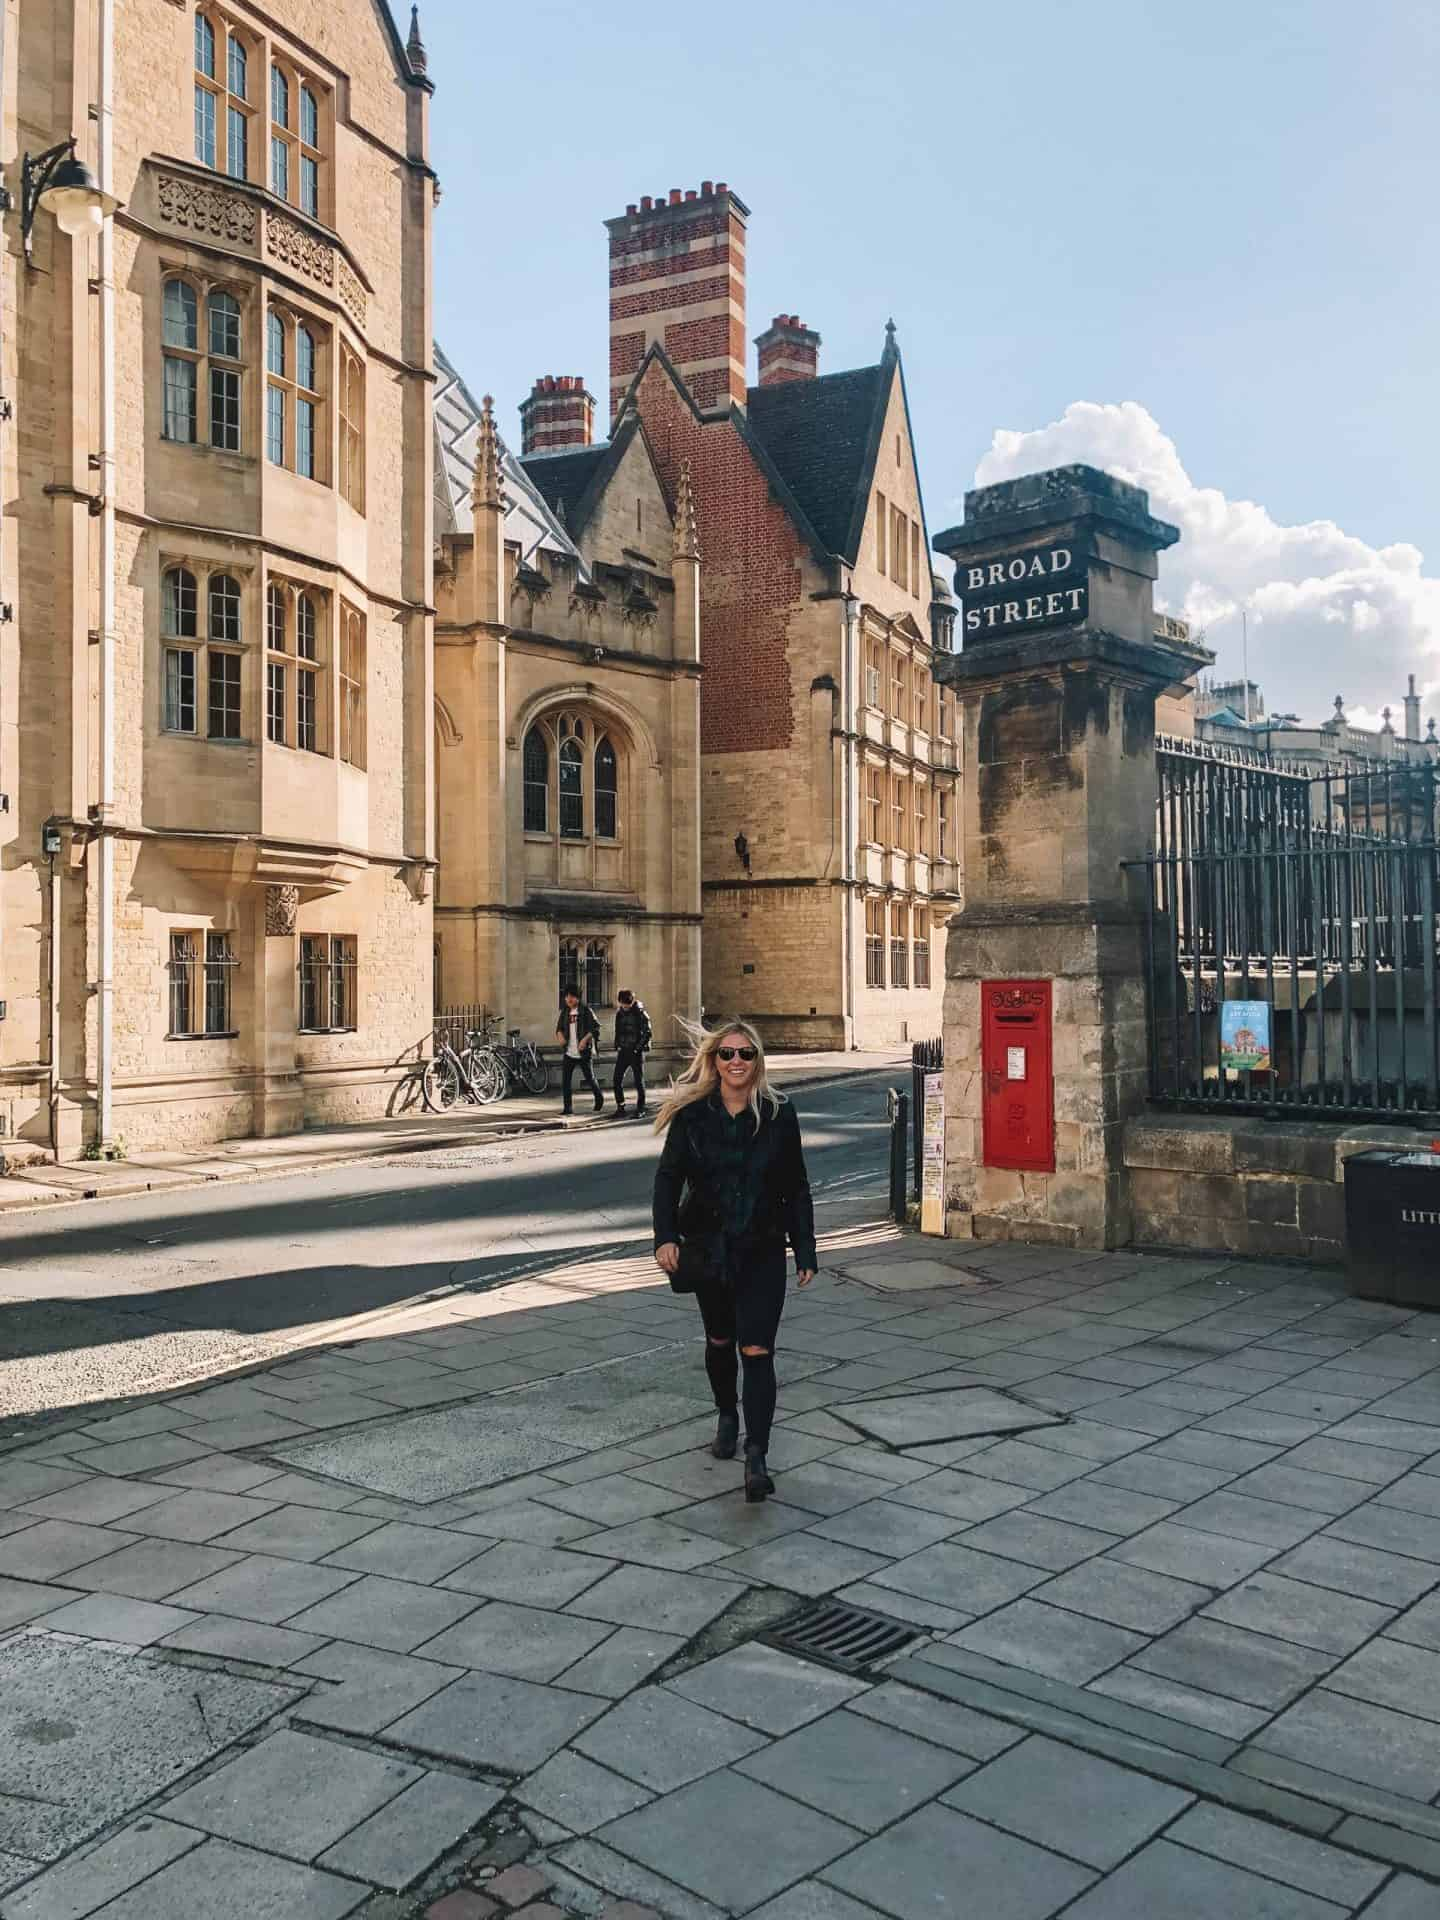 Girl smiling, walking towards the camera in historic Oxford